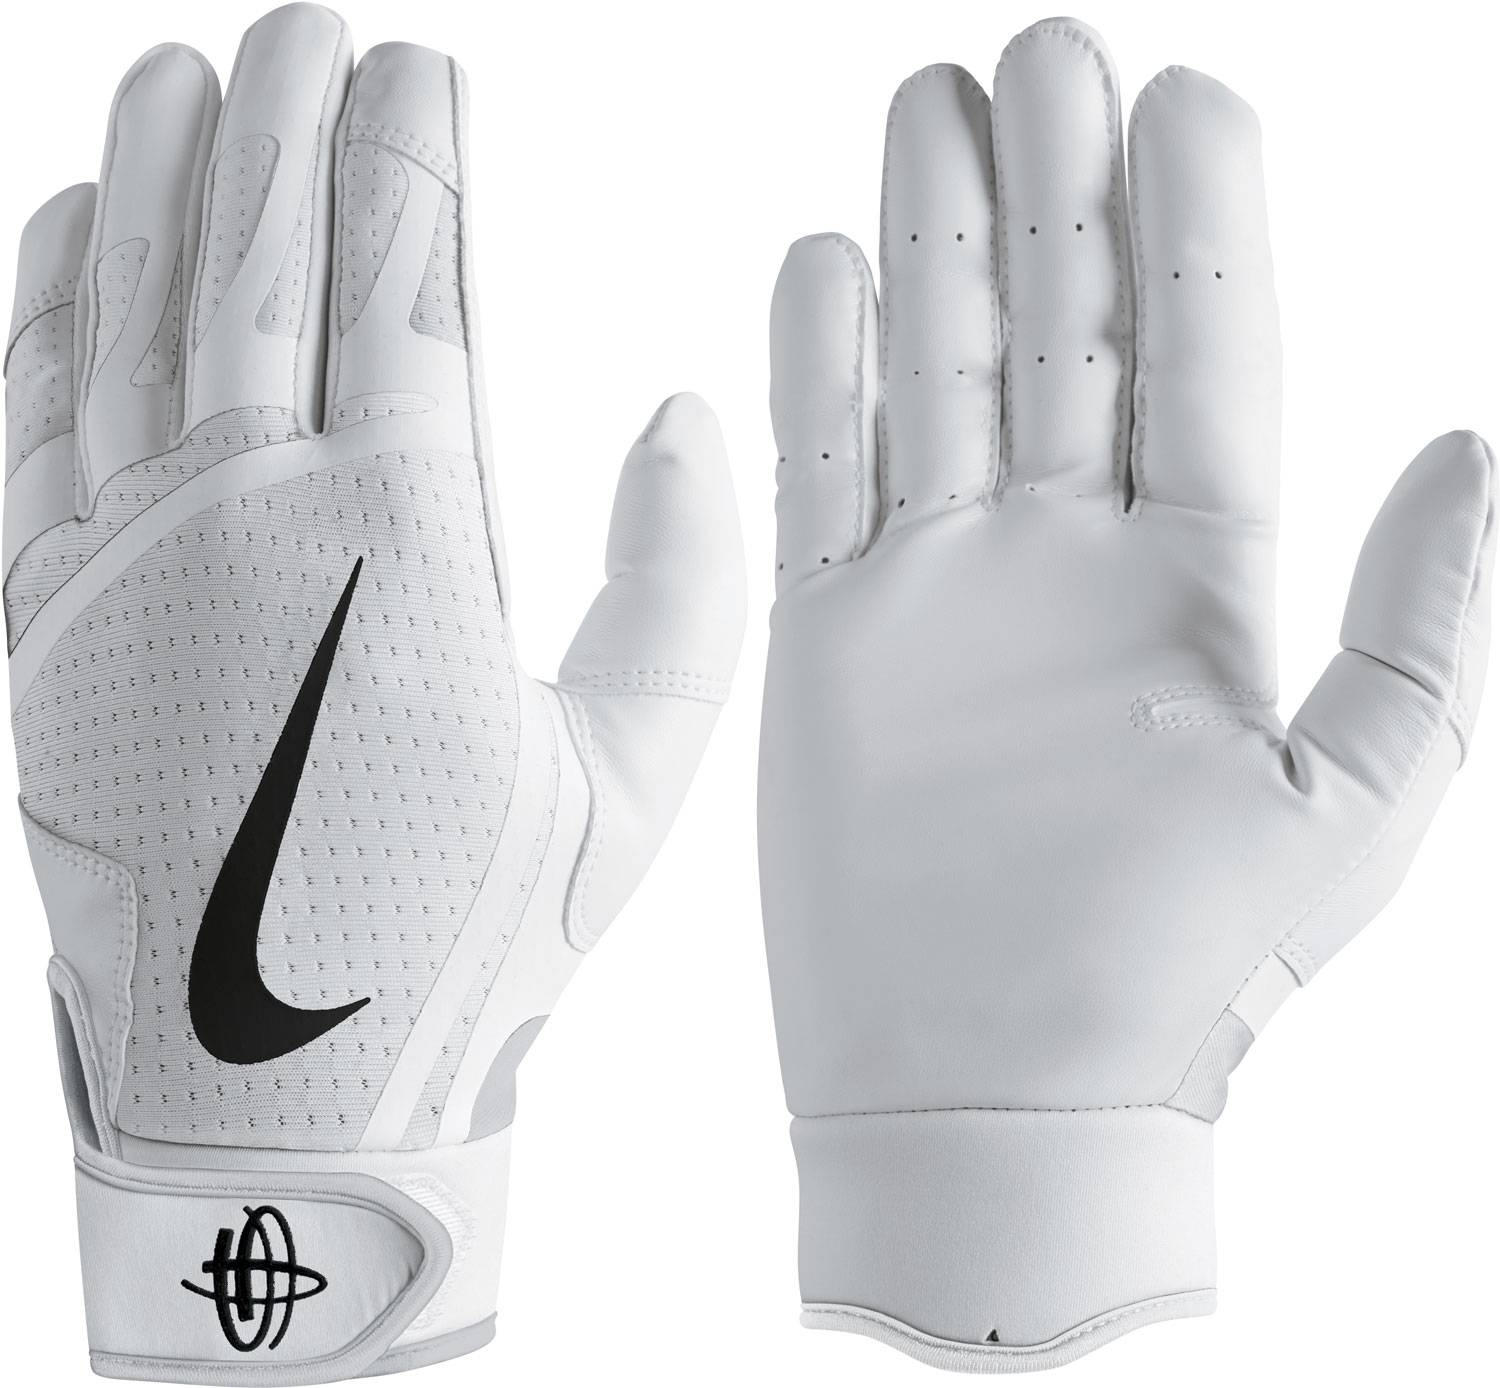 6eb592e2ccac3 Nike Huarache Edge Adult Baseball Batting Gloves